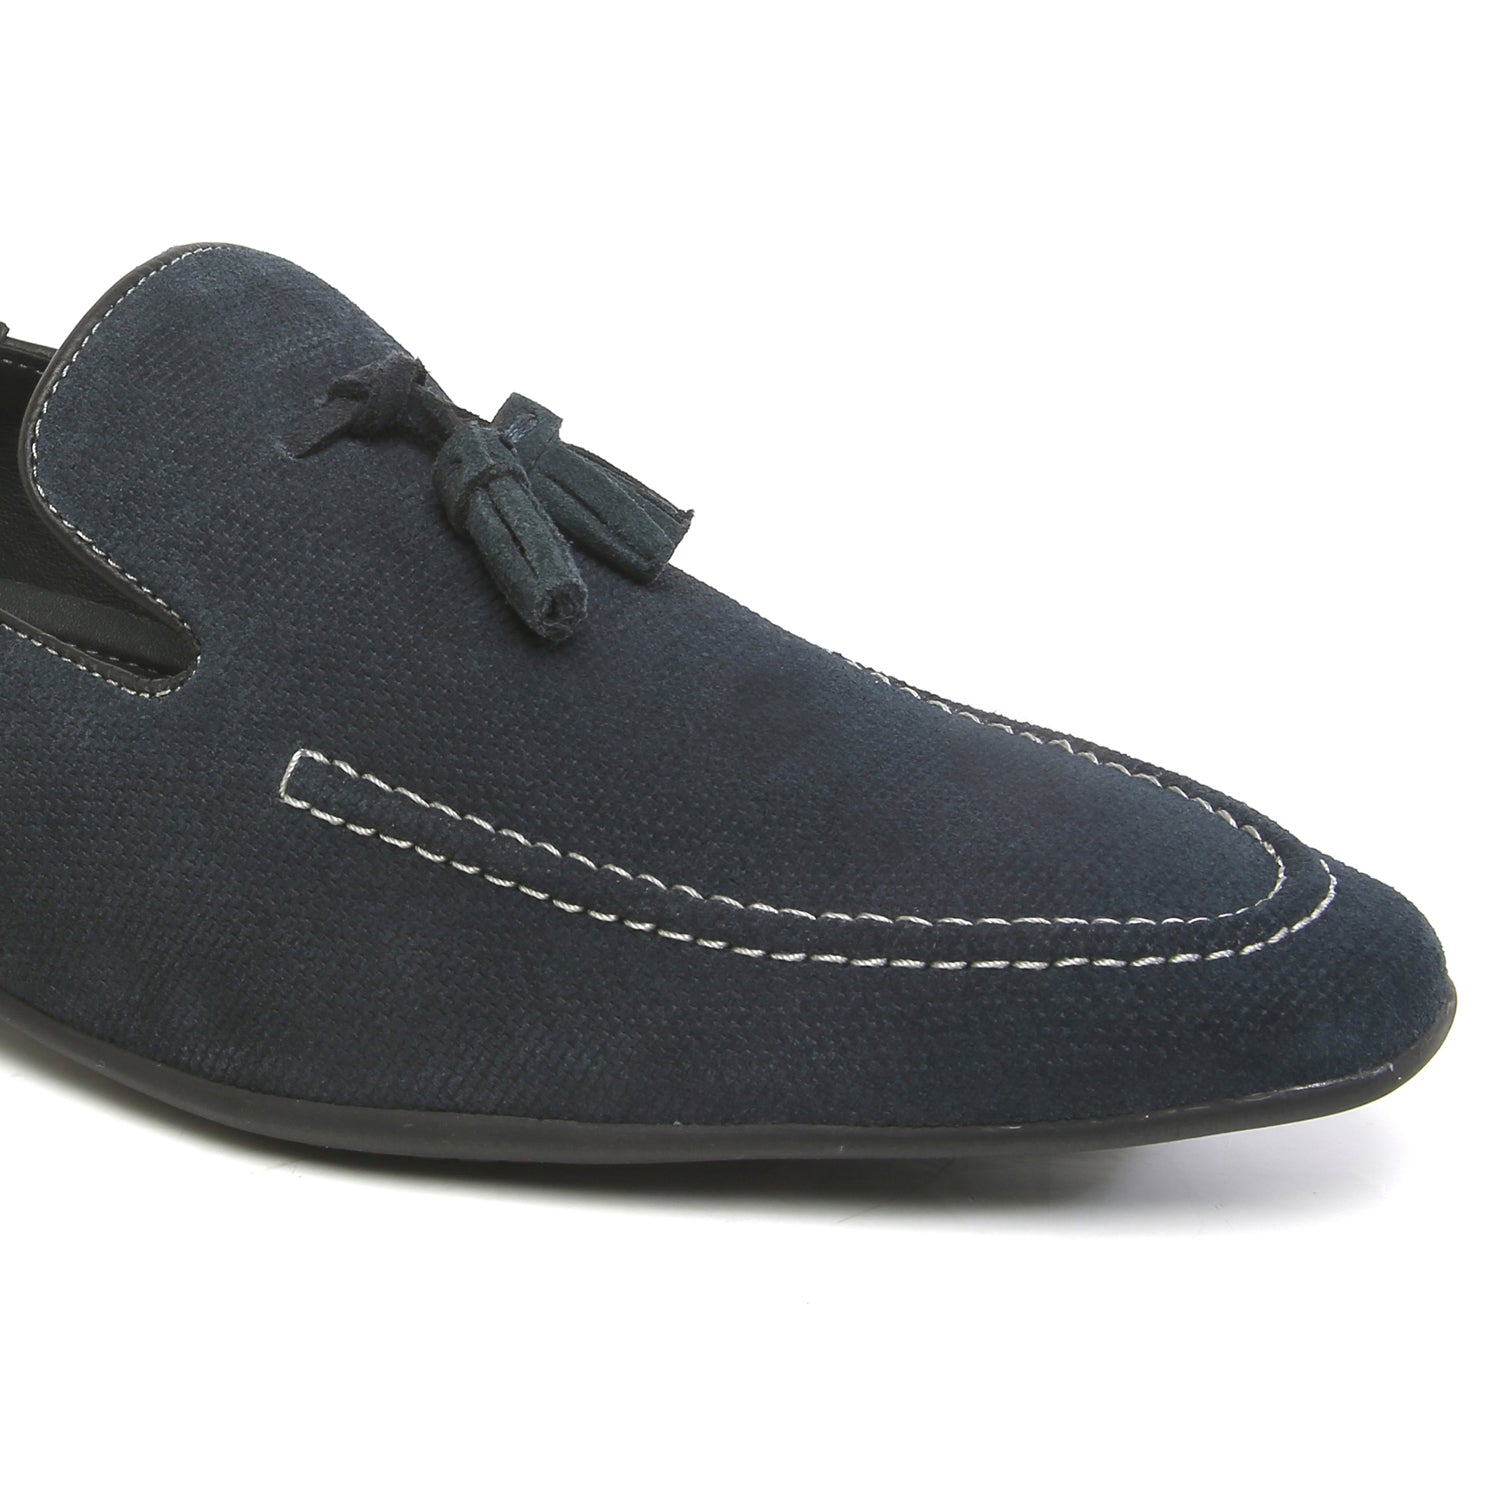 Denims Blue Loafer with Tassels